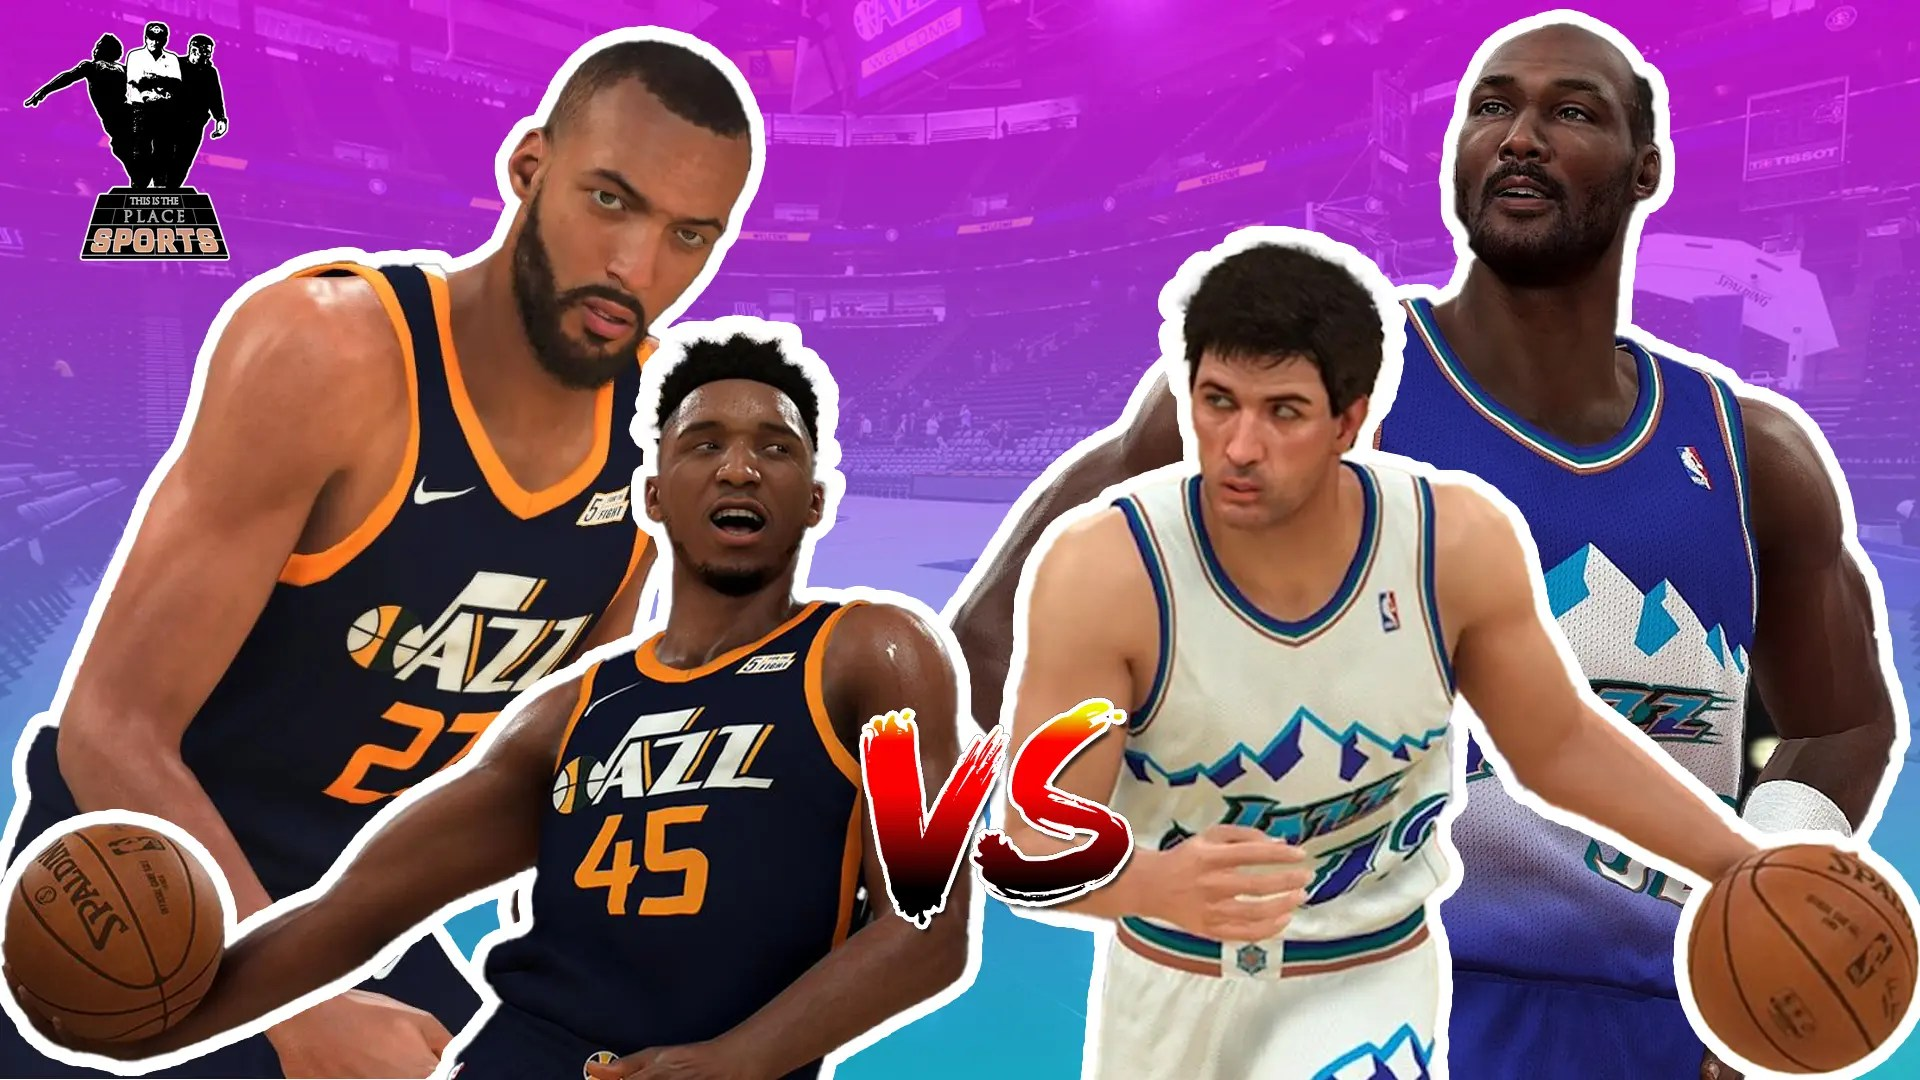 Could The Current Utah Jazz Beat The 97 98 Jazz Nba 2k21 Simulation W Commentary This Is The Place Sports